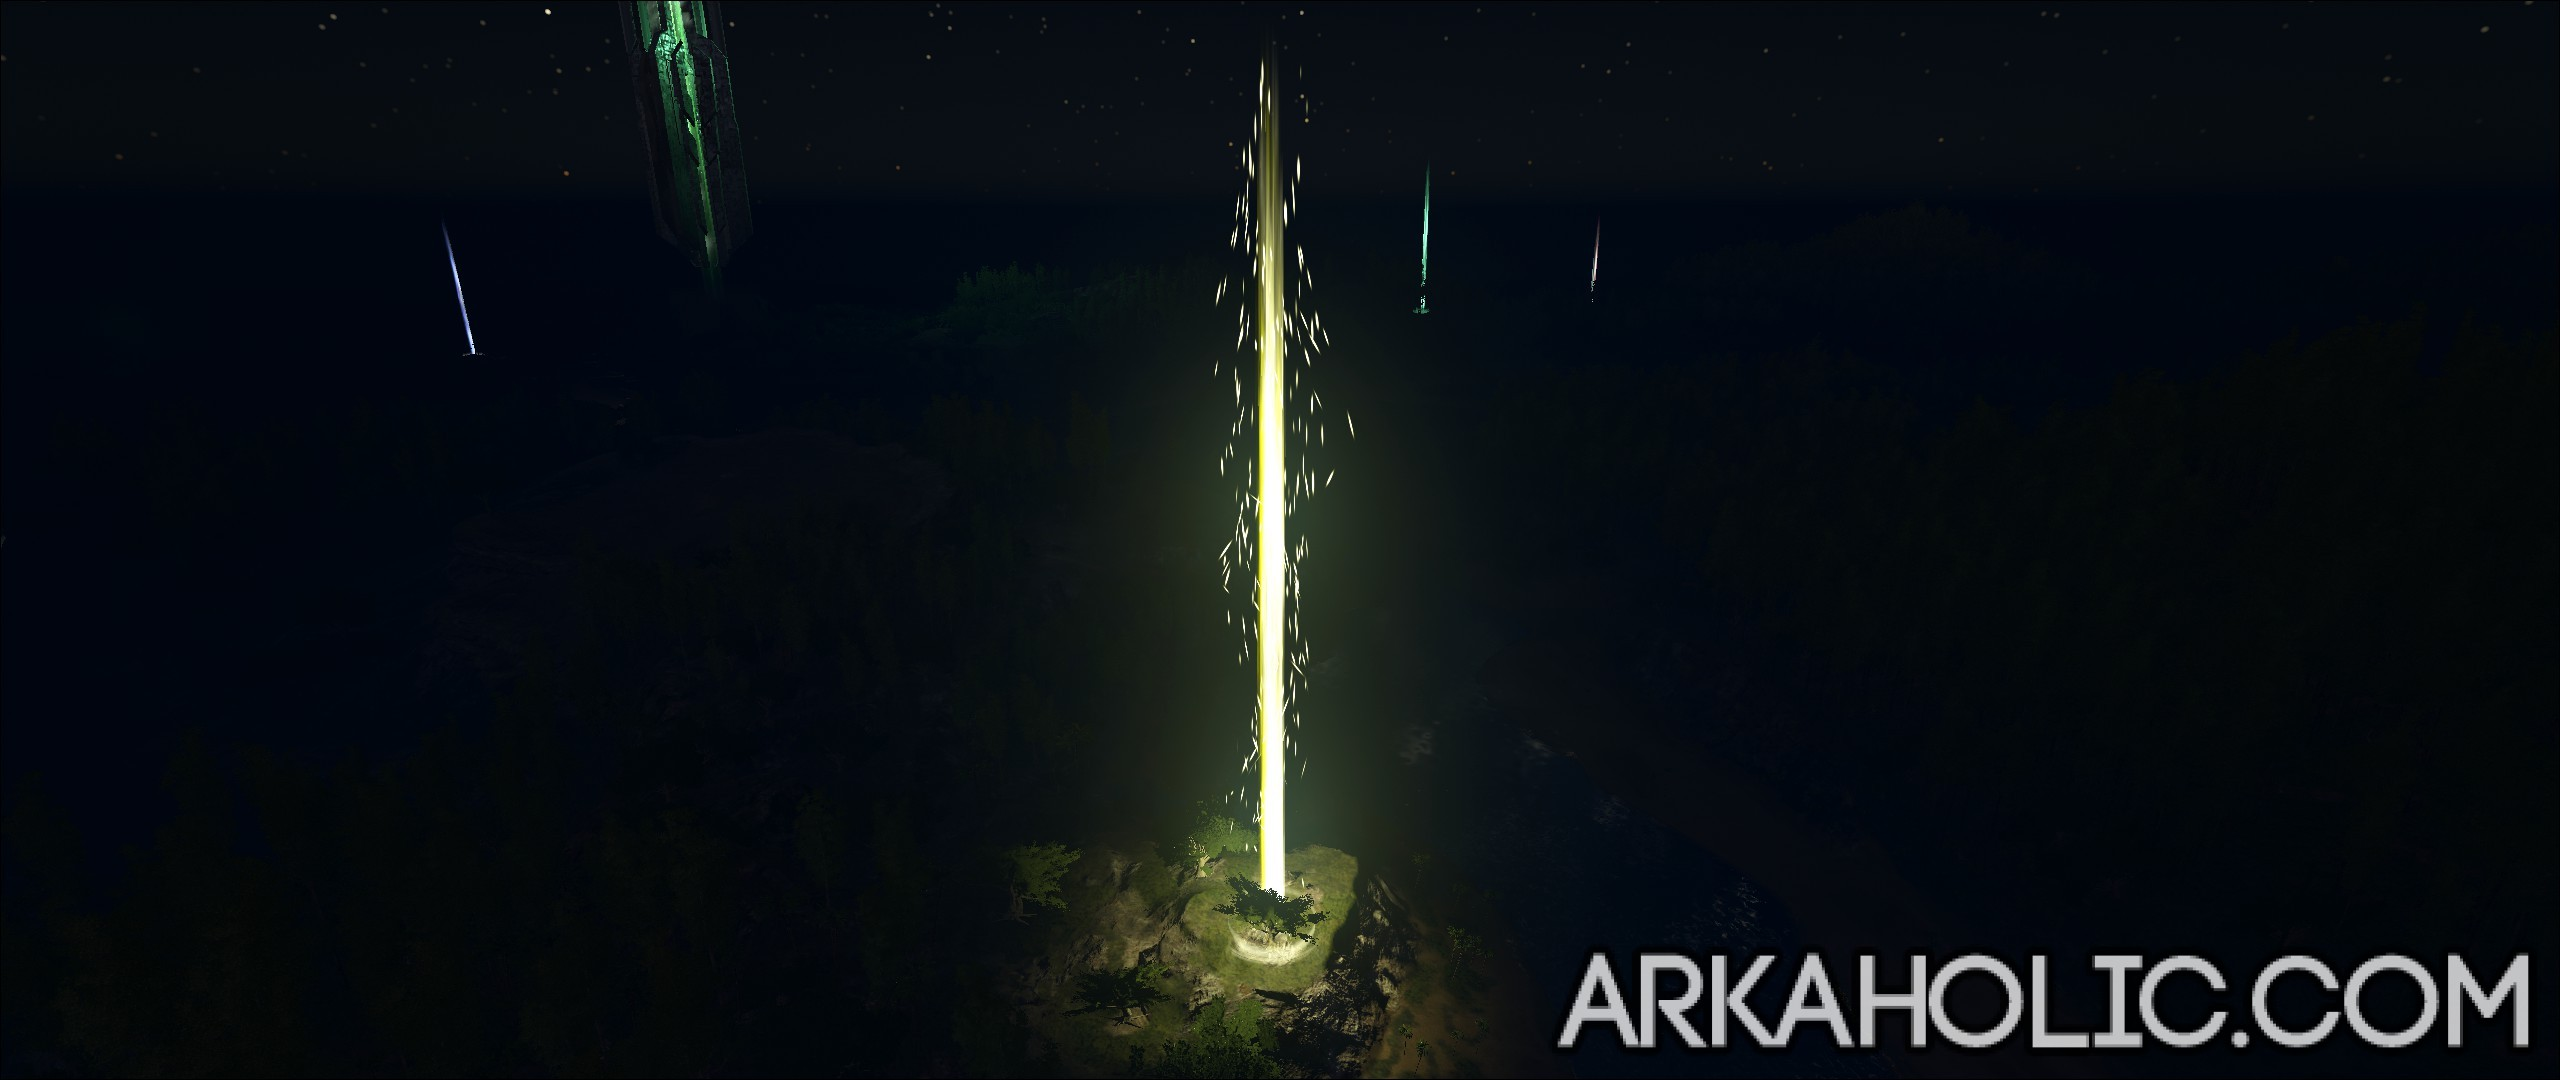 Ark survival evolved beacons guide yellow beacon malvernweather Gallery